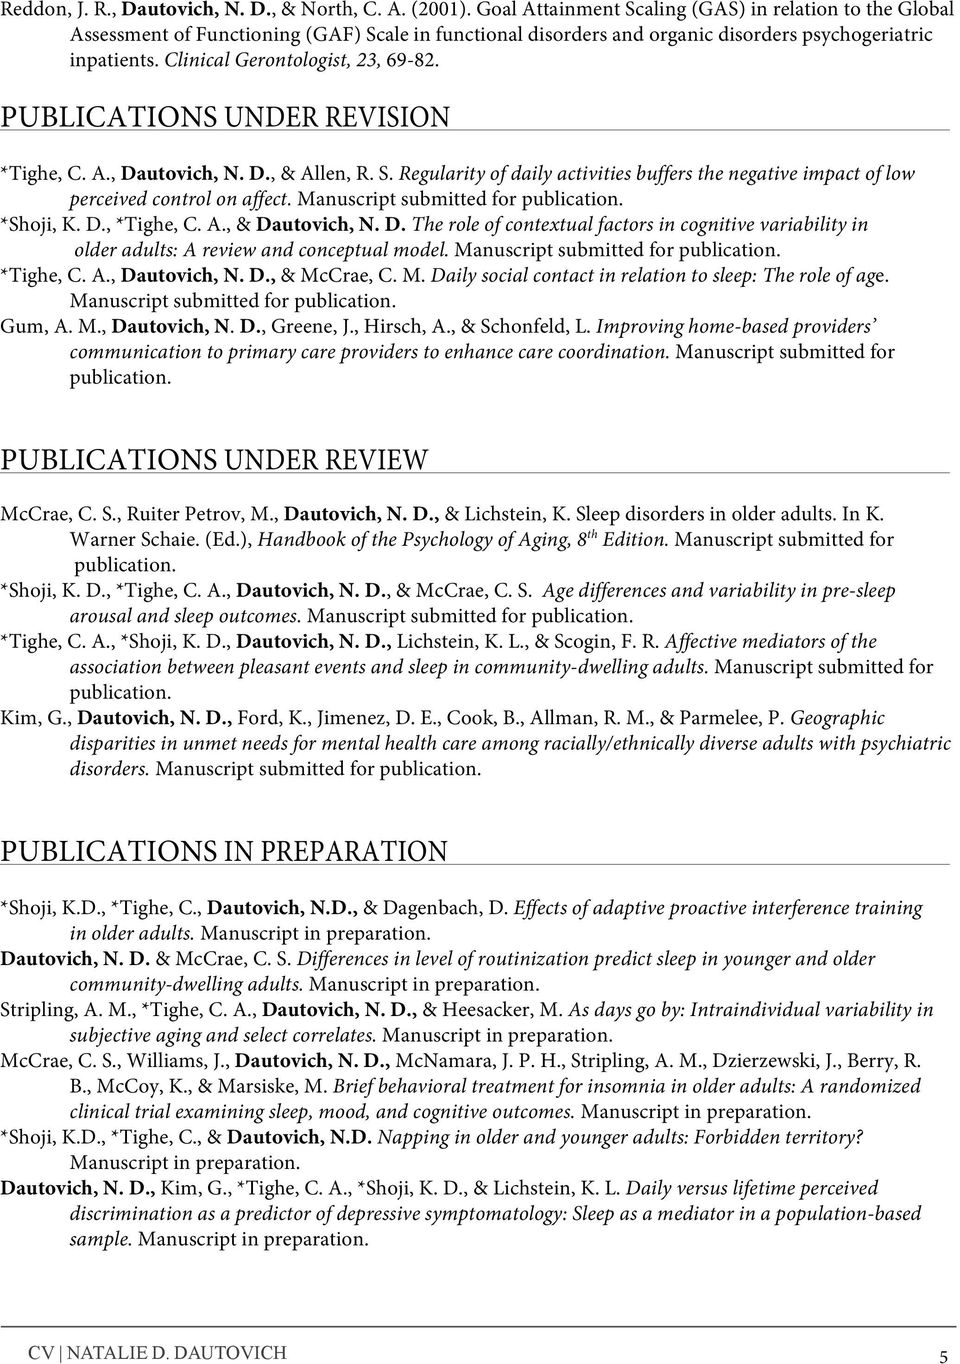 Clinical Gerontologist, 23, 69-82. PUBLICATIONS UNDER REVISION *Tighe, C. A., Dautovich, N. D., & Allen, R. S.